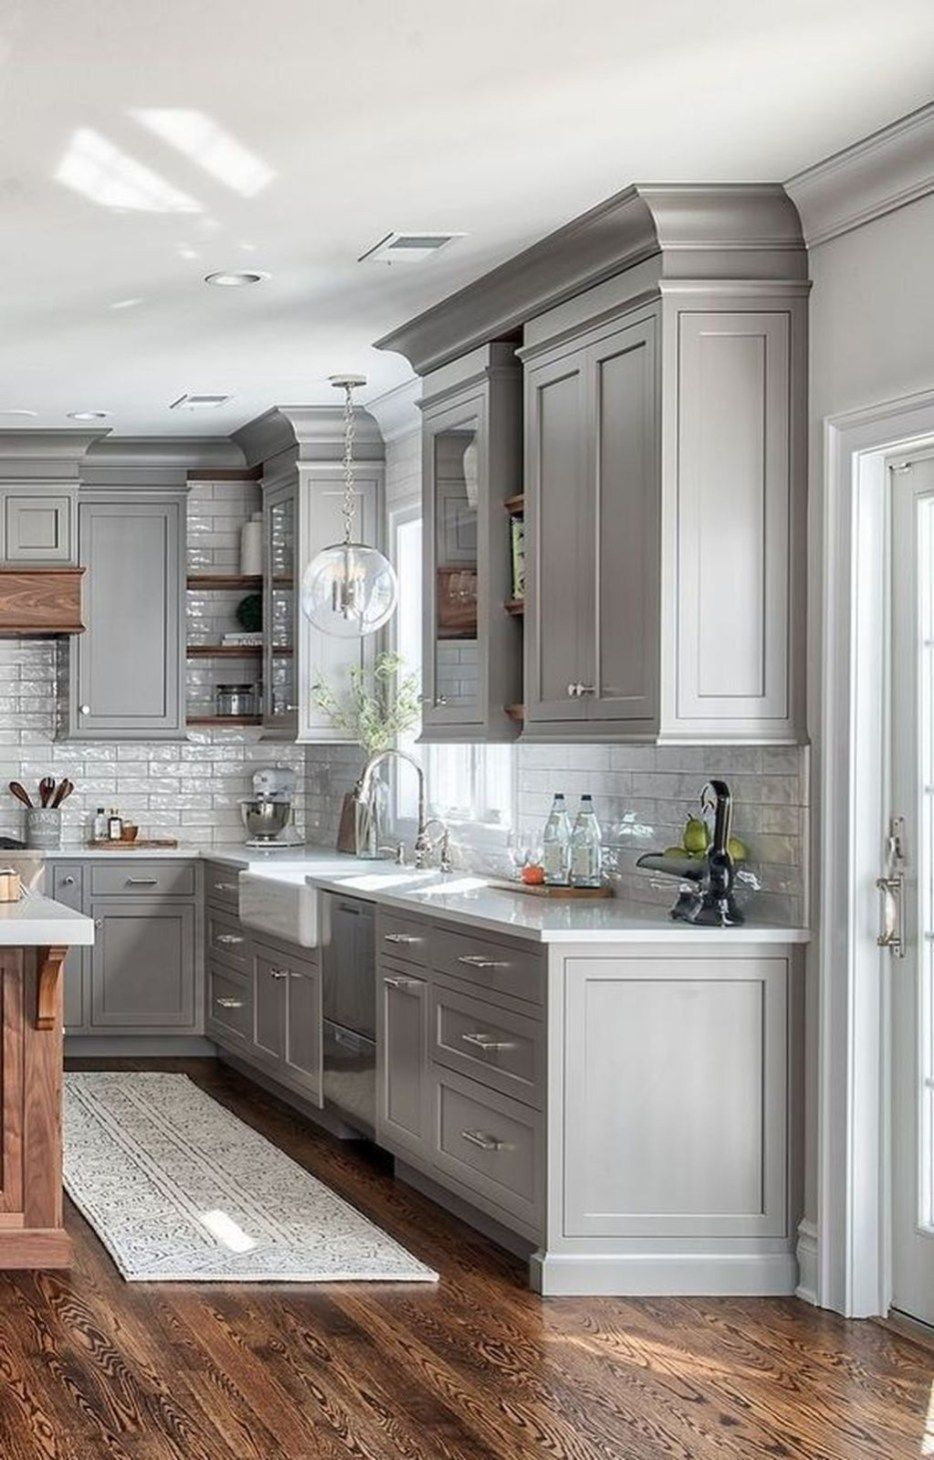 34 Luxury Farmhouse Kitchen Design Ideas To Bring Modern ...